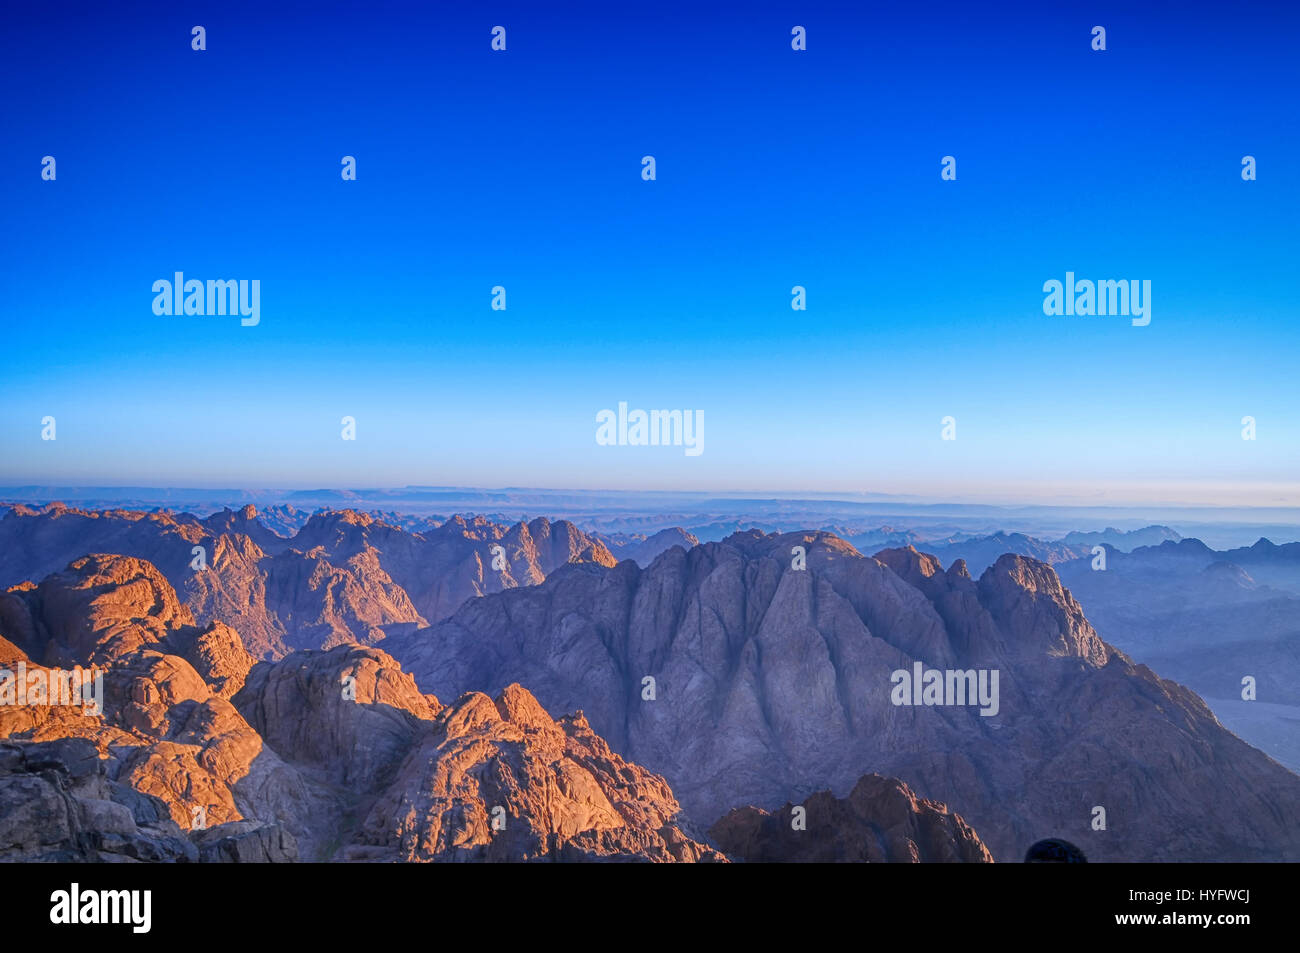 Sun Rise at Sinai - Stock Image